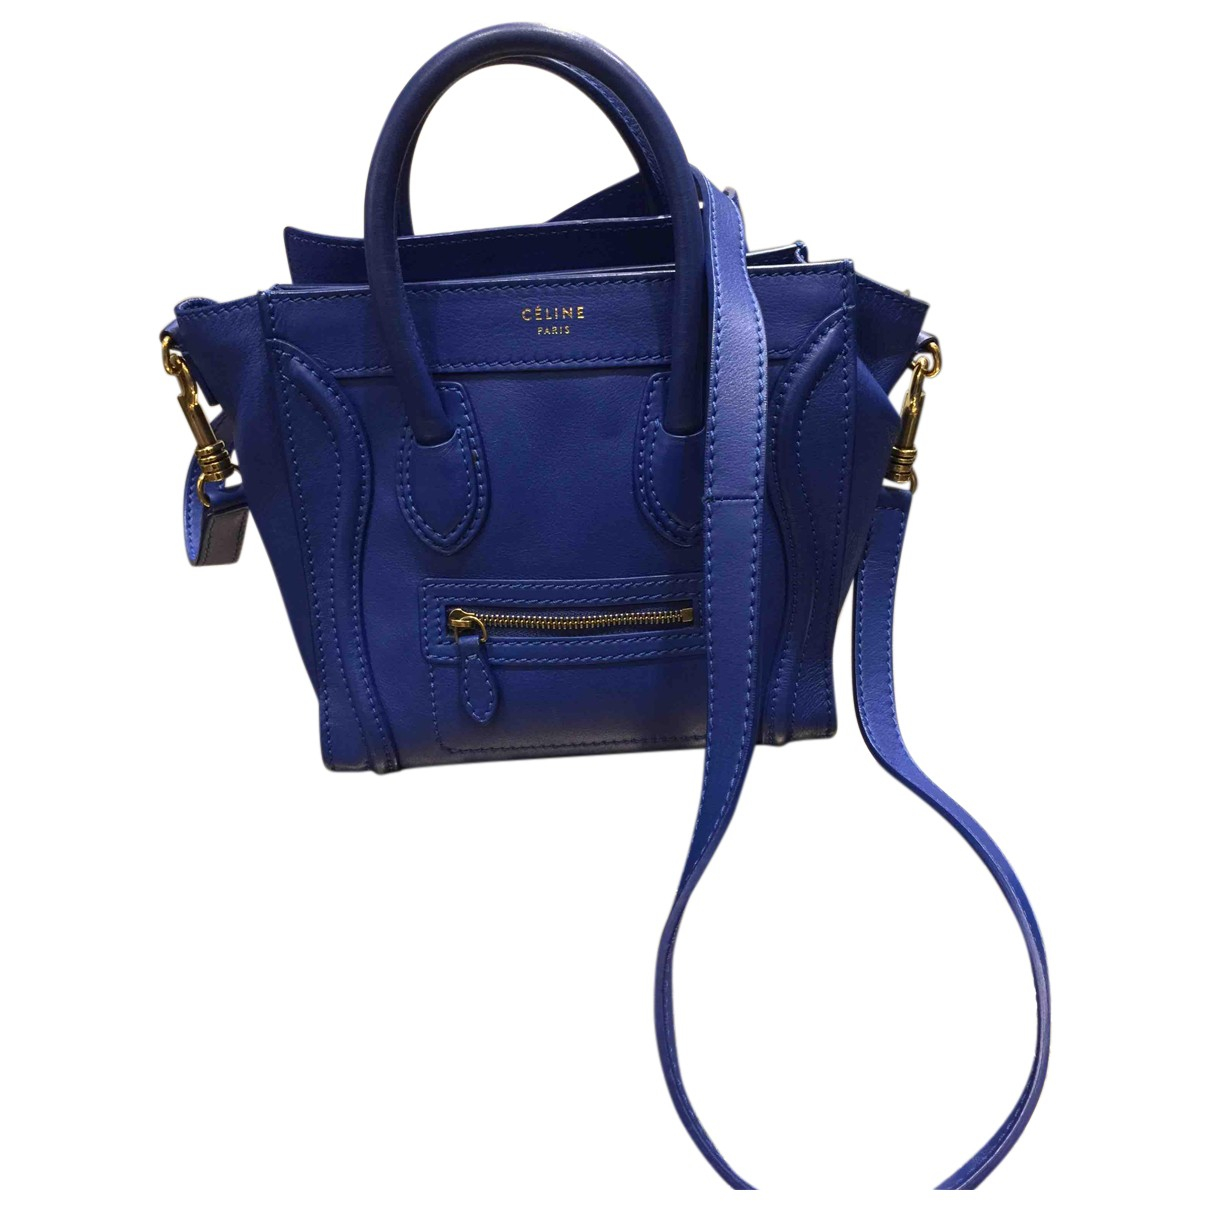 Celine Luggage Blue Leather handbag for Women N